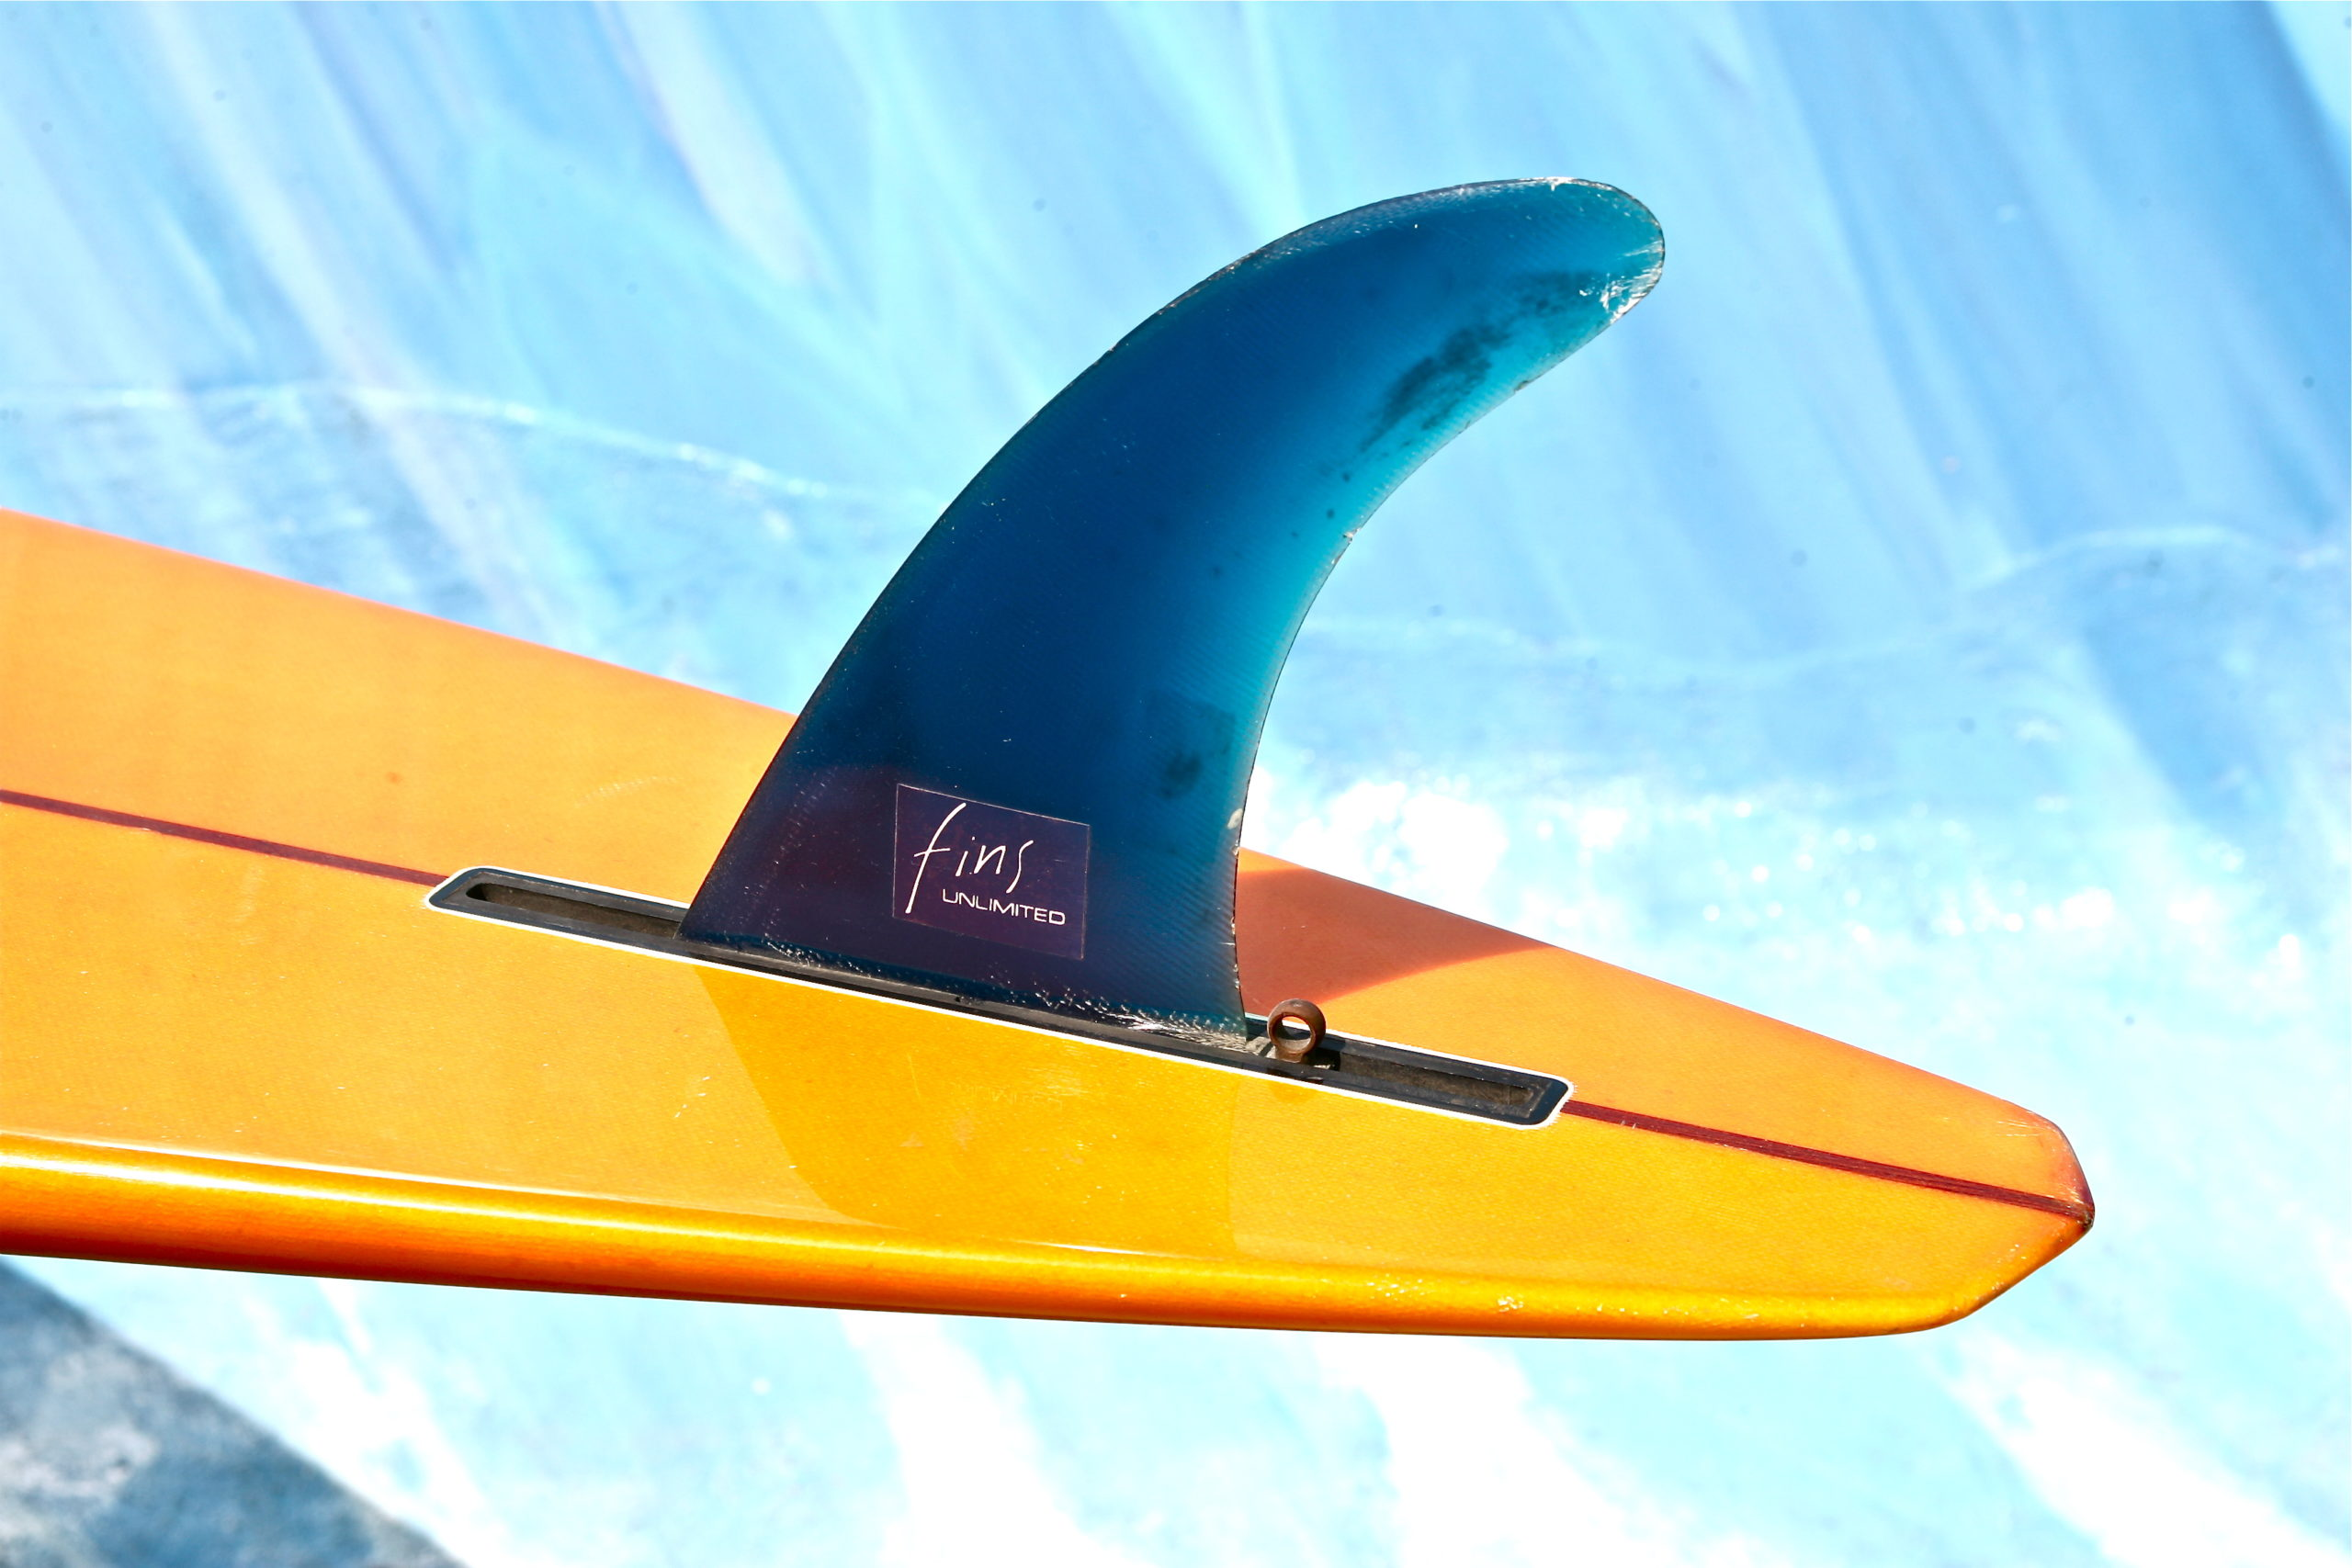 The future fins are very easy to install and are available at affordable prices